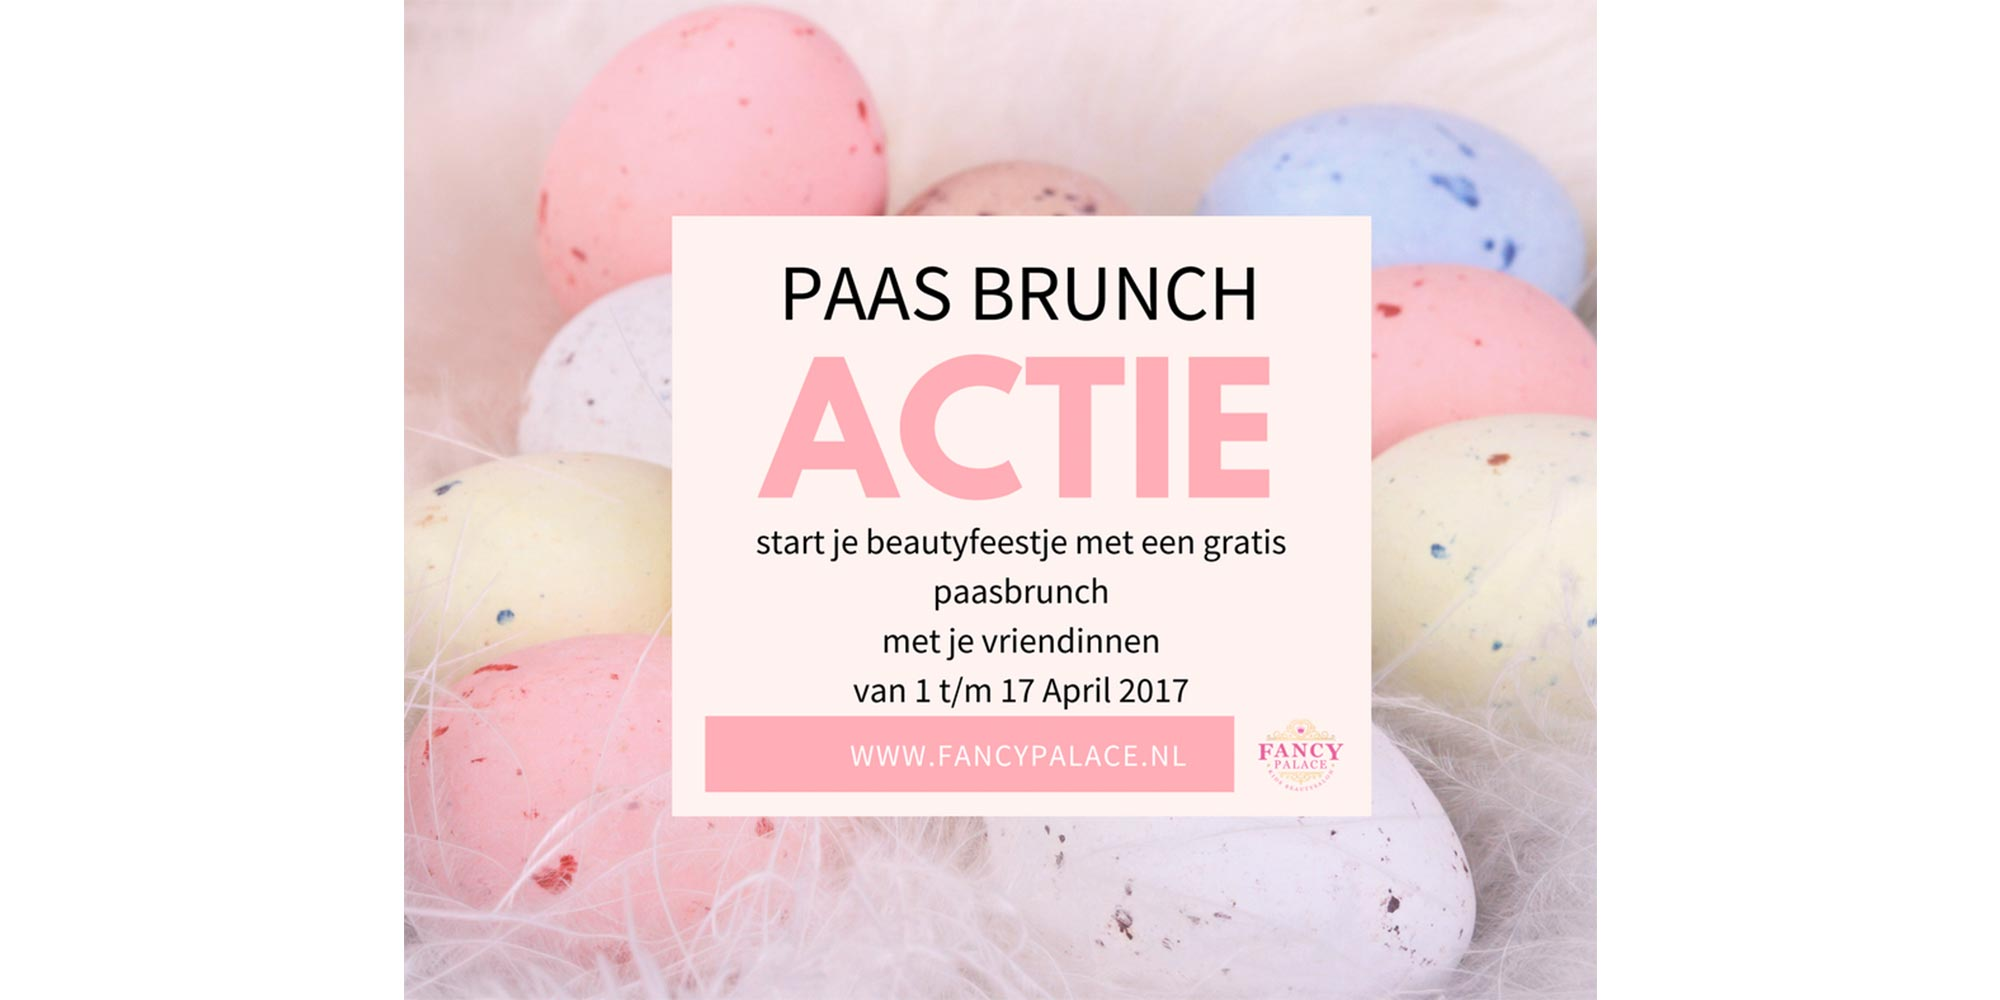 Fancy Palace Paas Actie